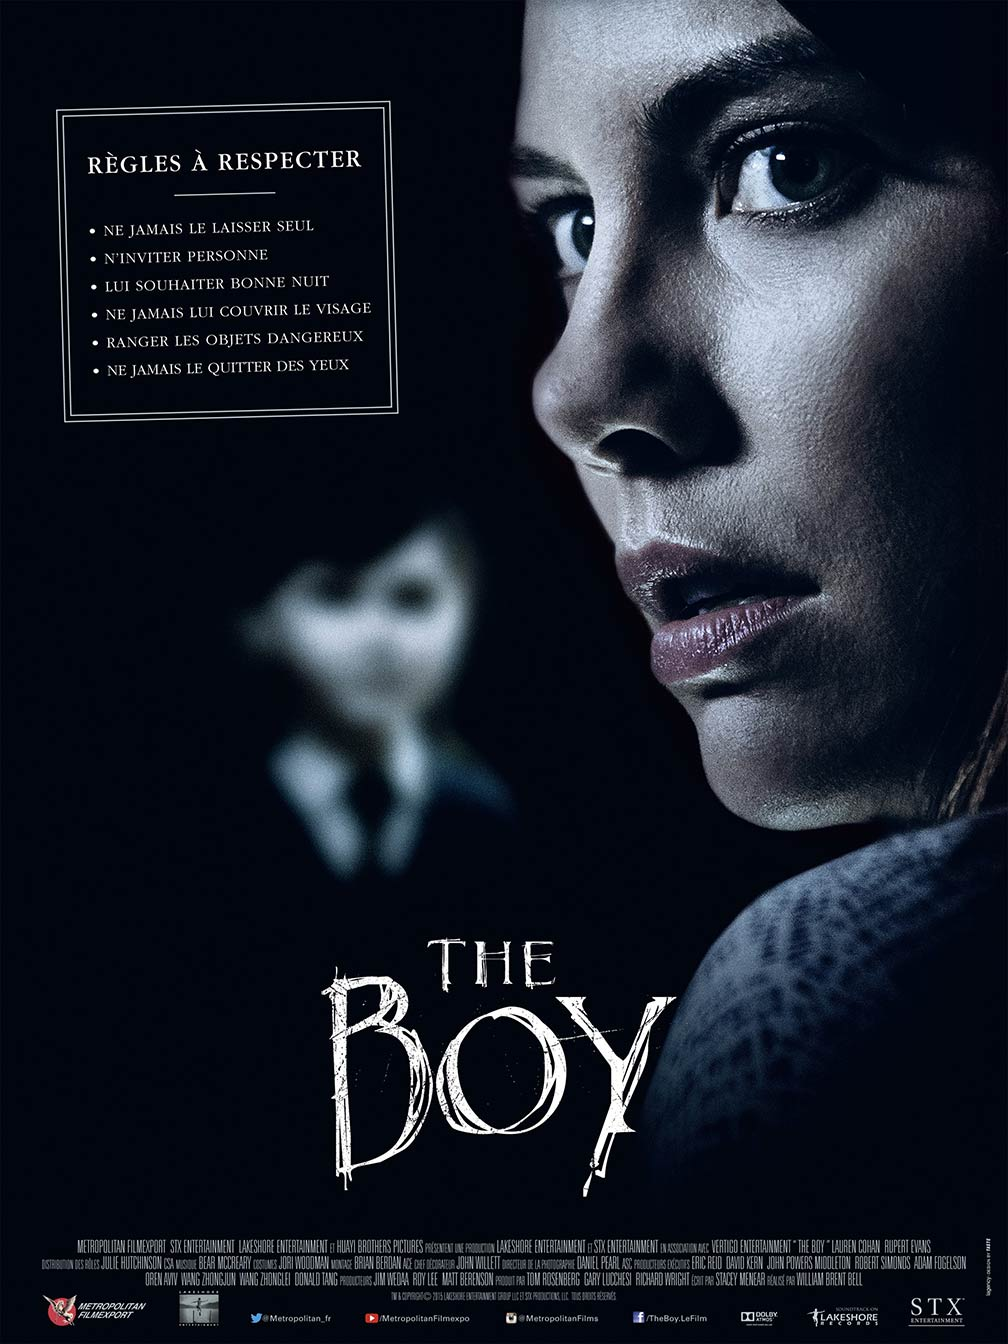 The Boy (2016) poster image